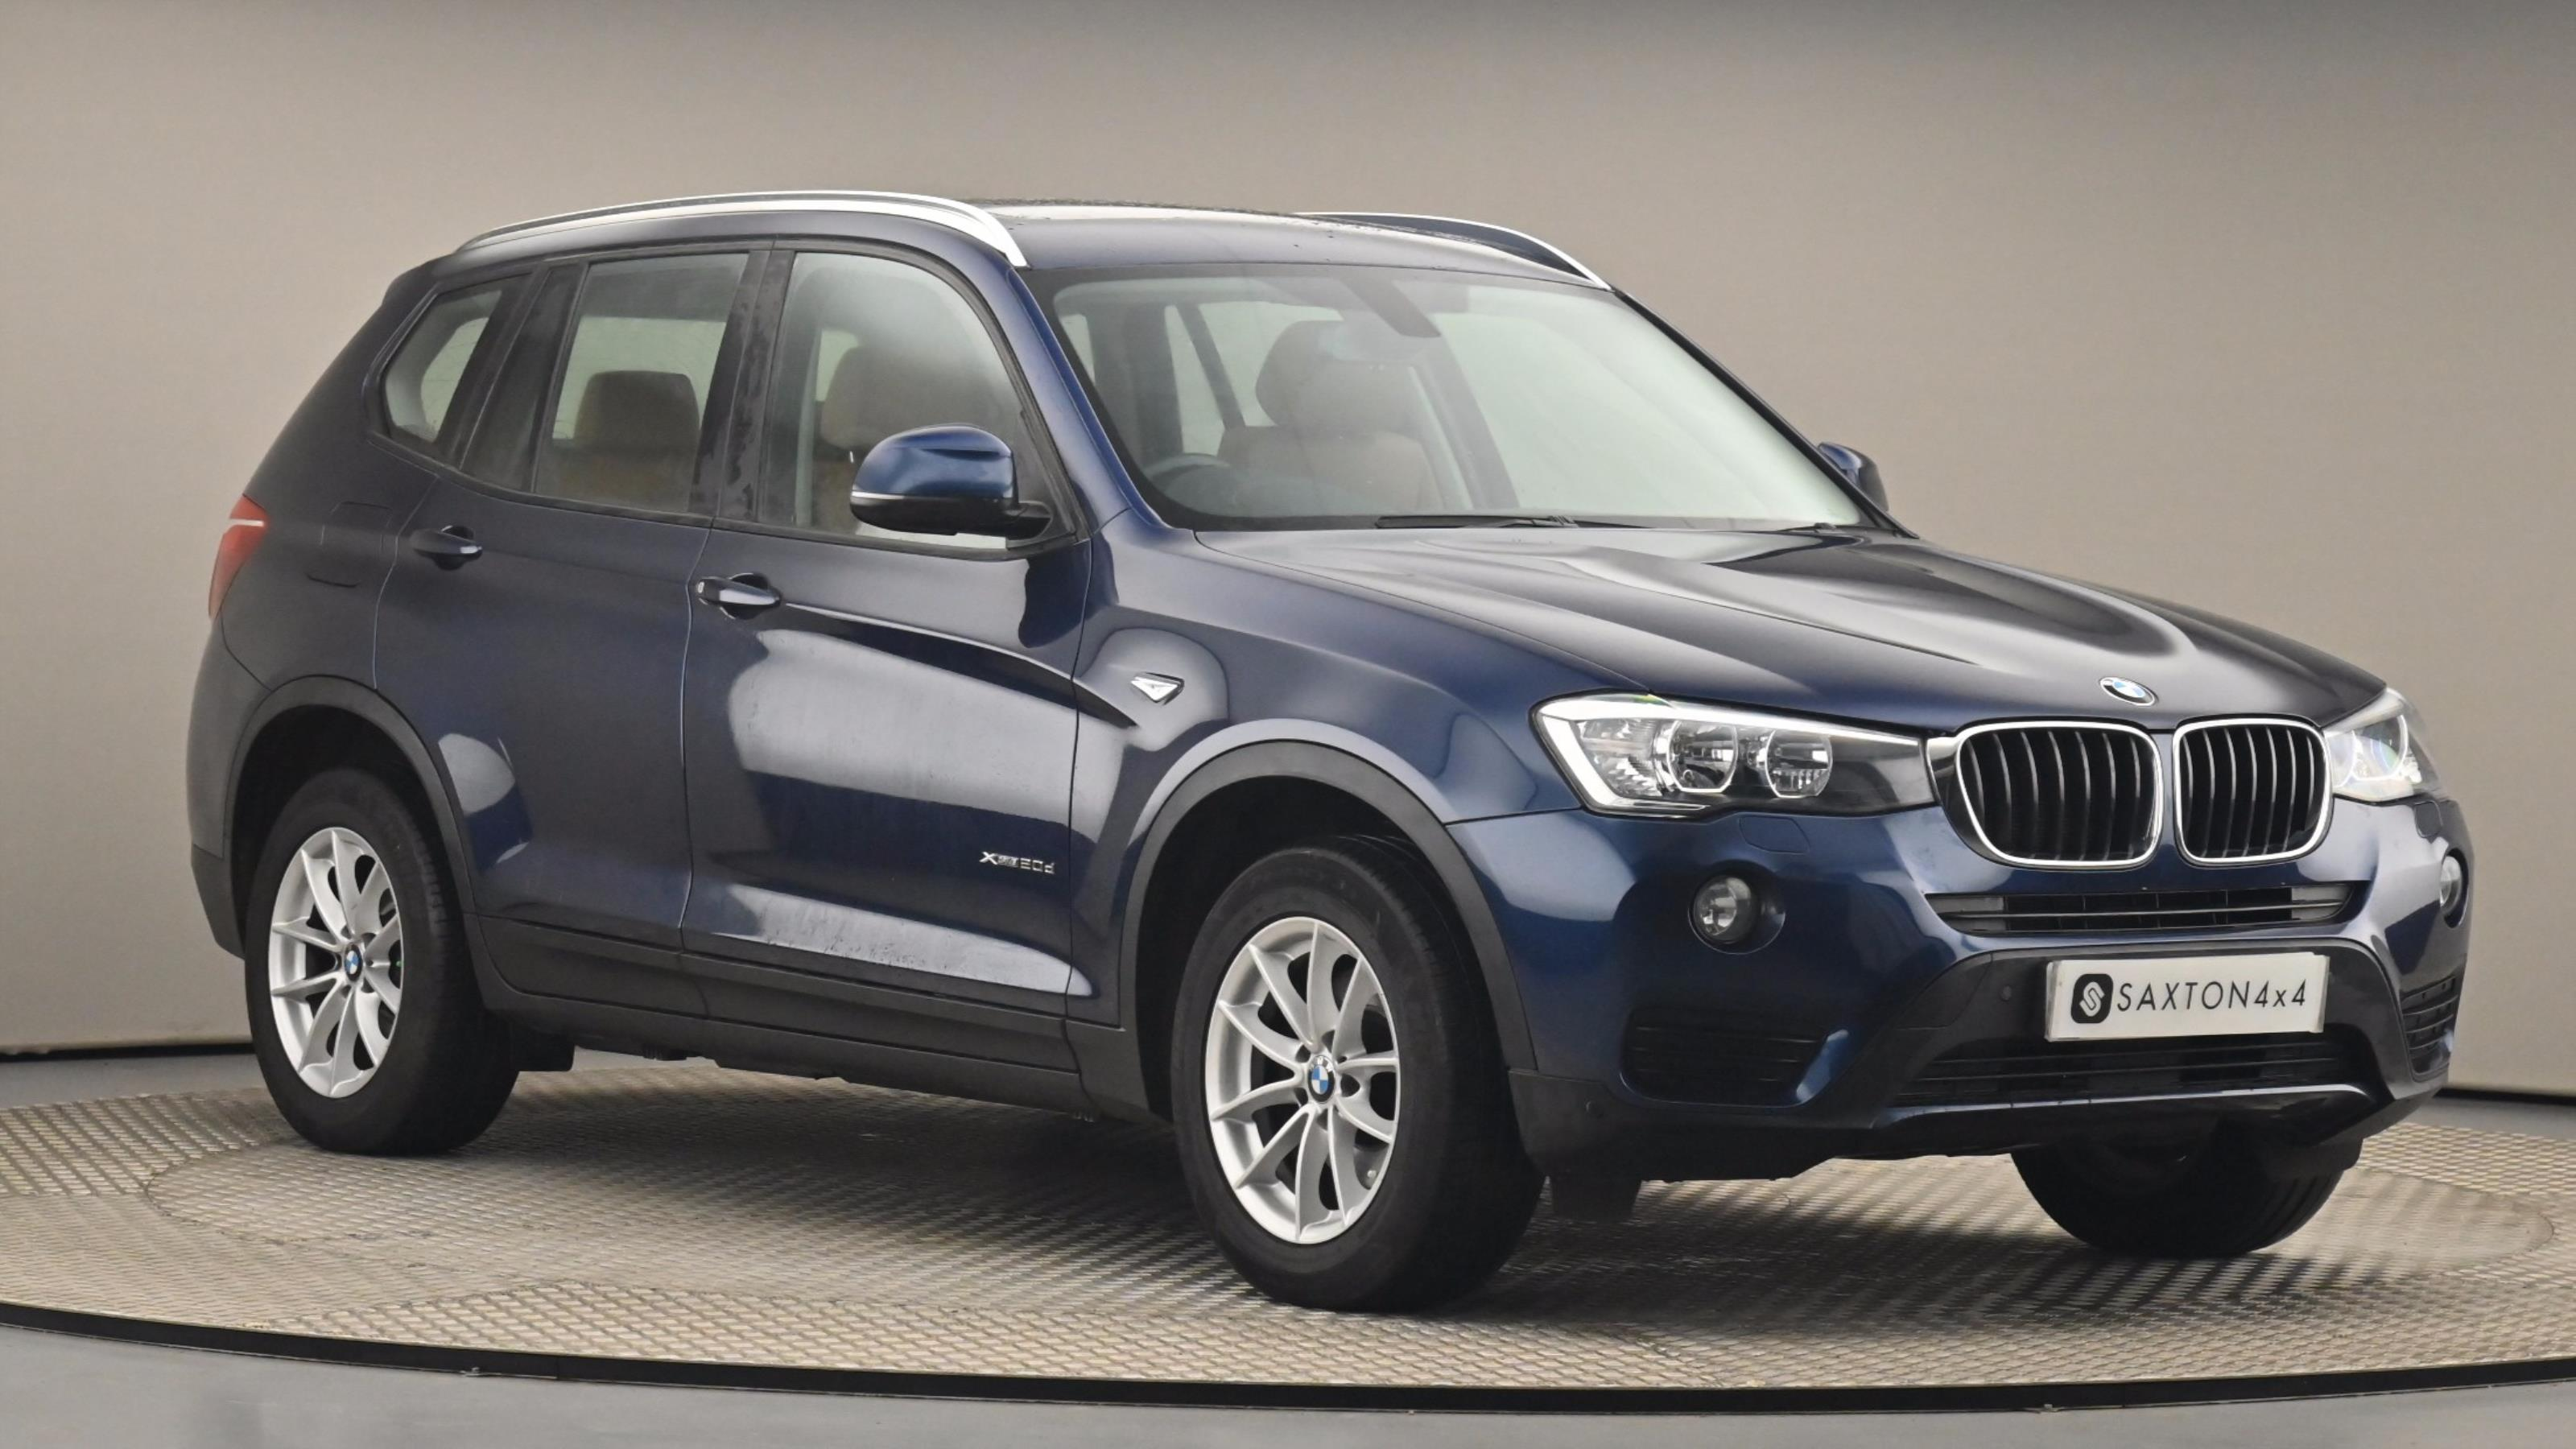 Used 2015 BMW X3 xDrive20d SE 5dr BLUE at Saxton4x4